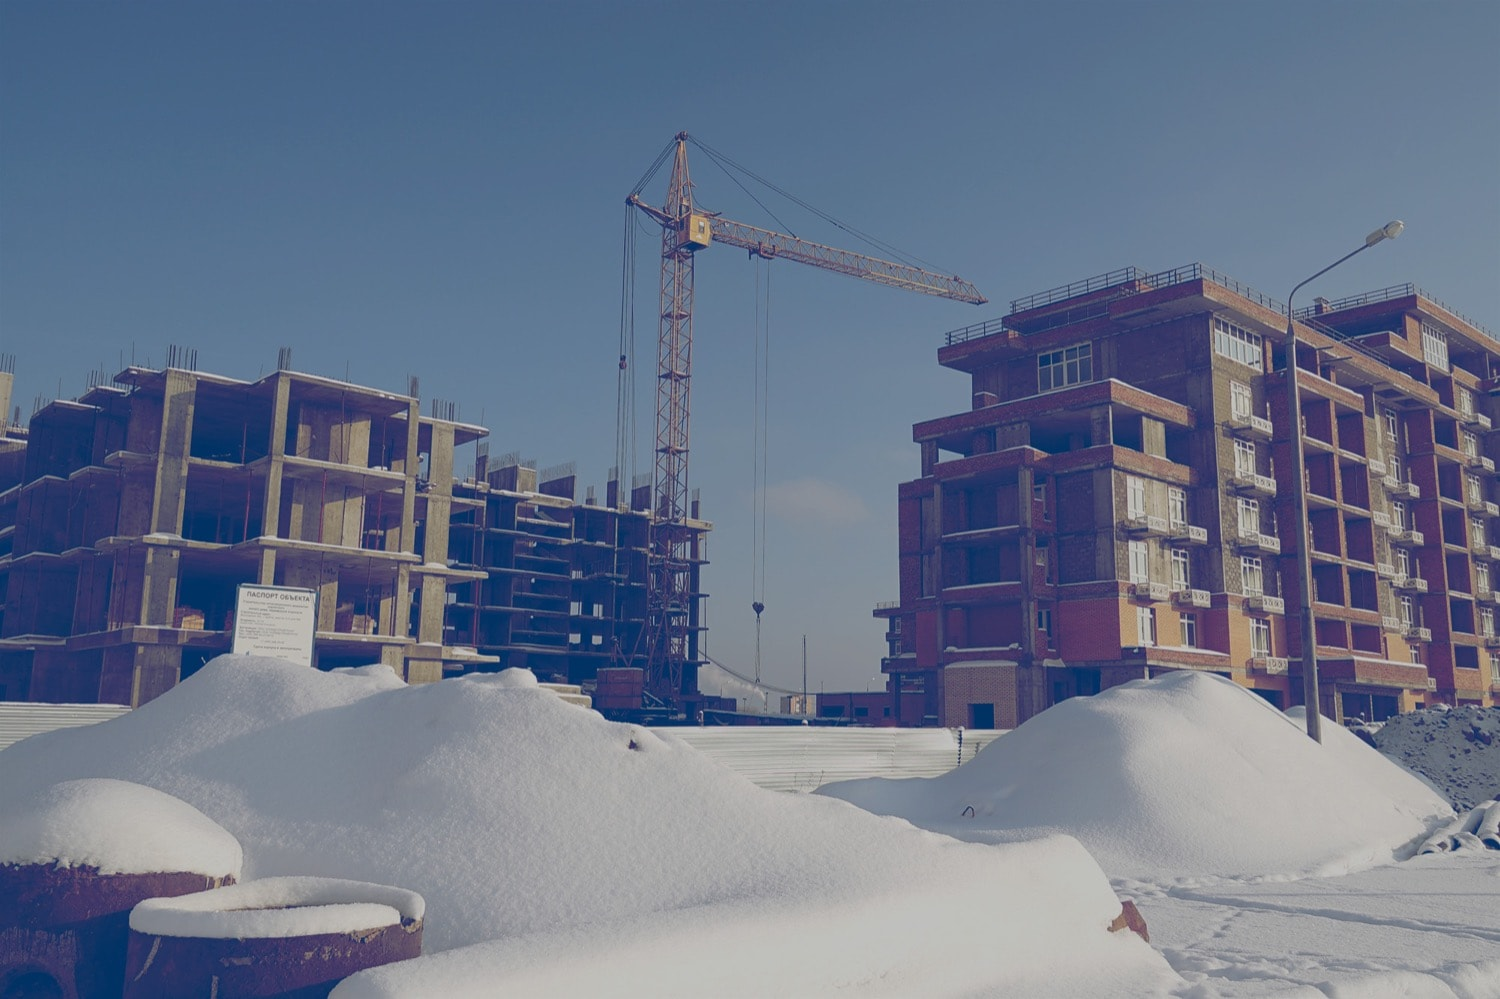 Two condos under construction with a crane in the background and snow on the ground.